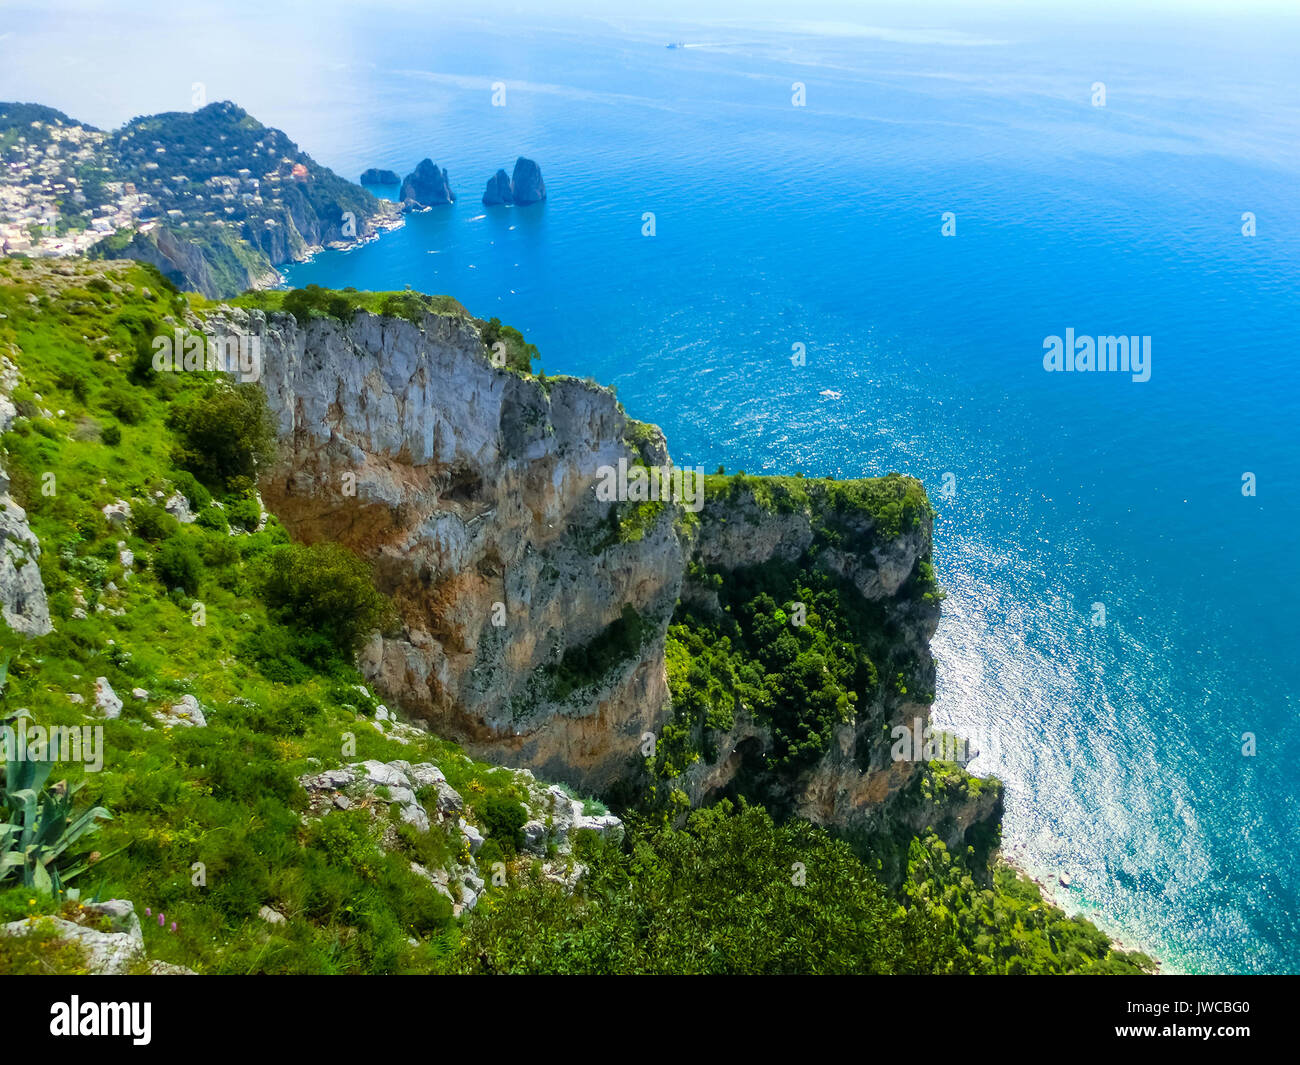 View from a cliff on the island of Capri, Italy, and rocks in sea - Stock Image